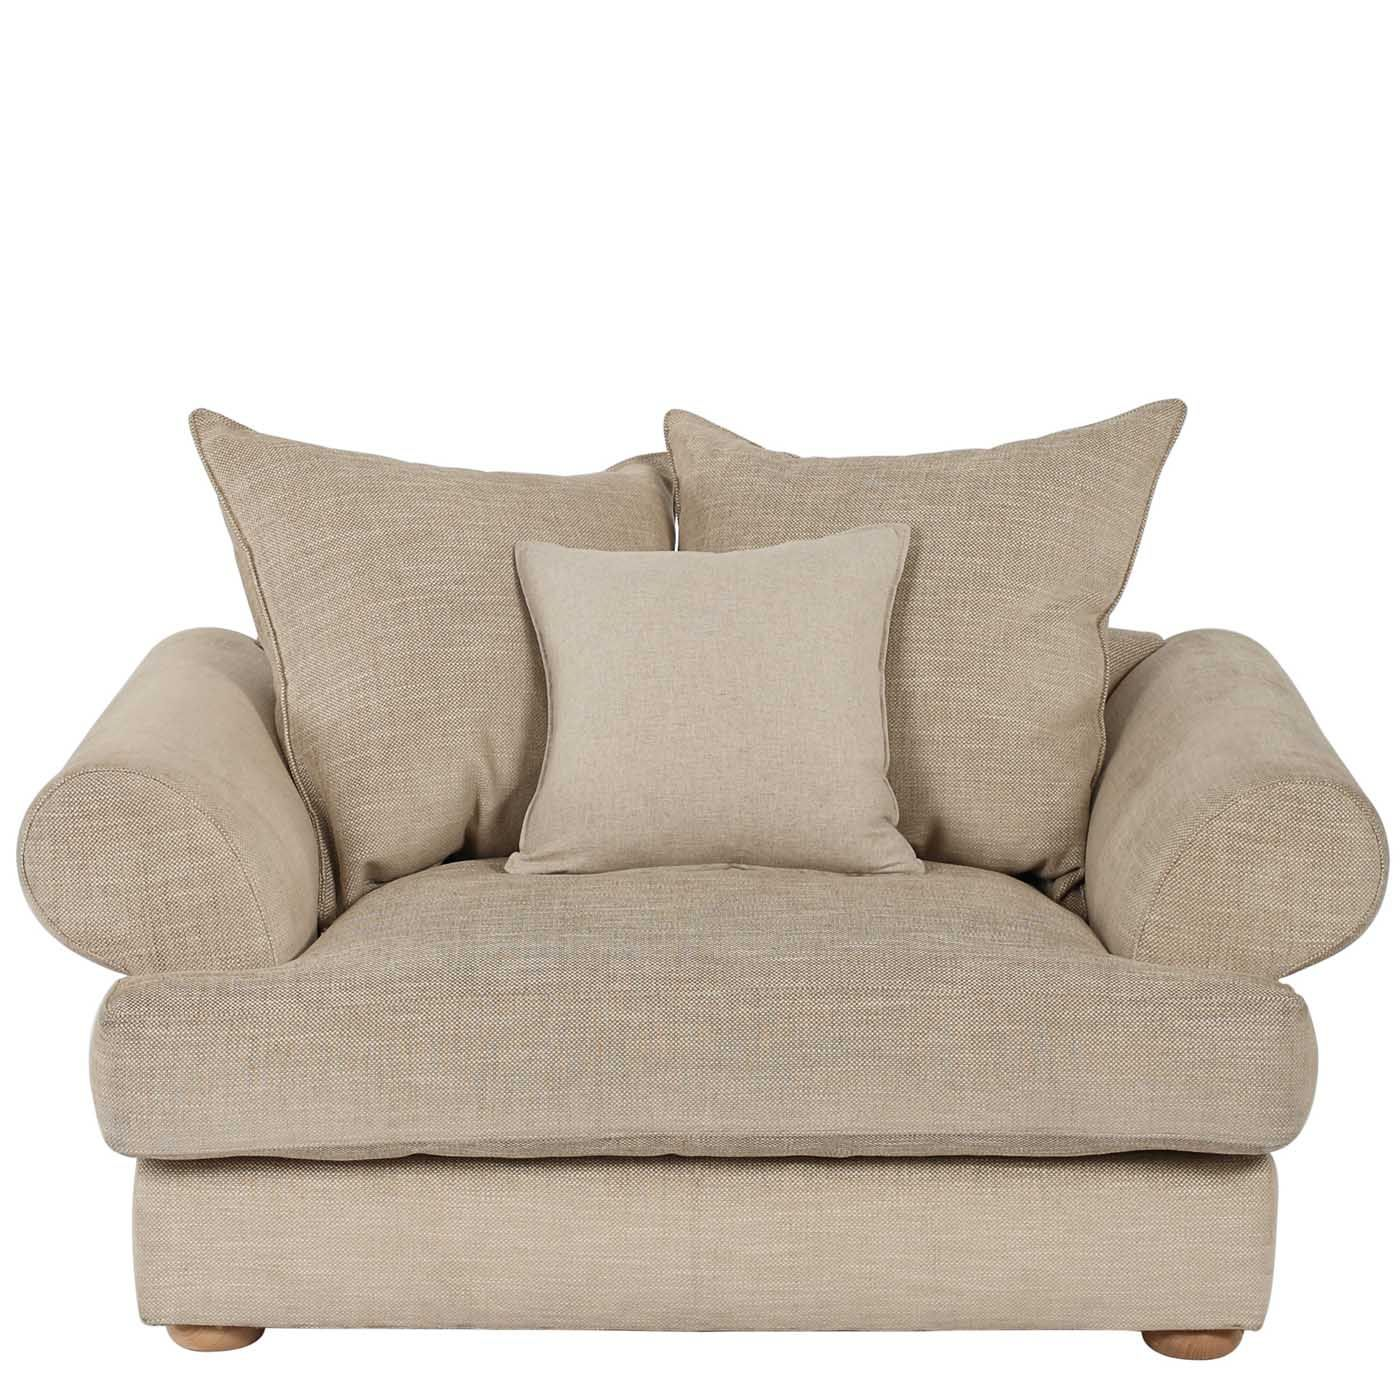 Over stuffed furniture | ... with square or t cushion leather ...